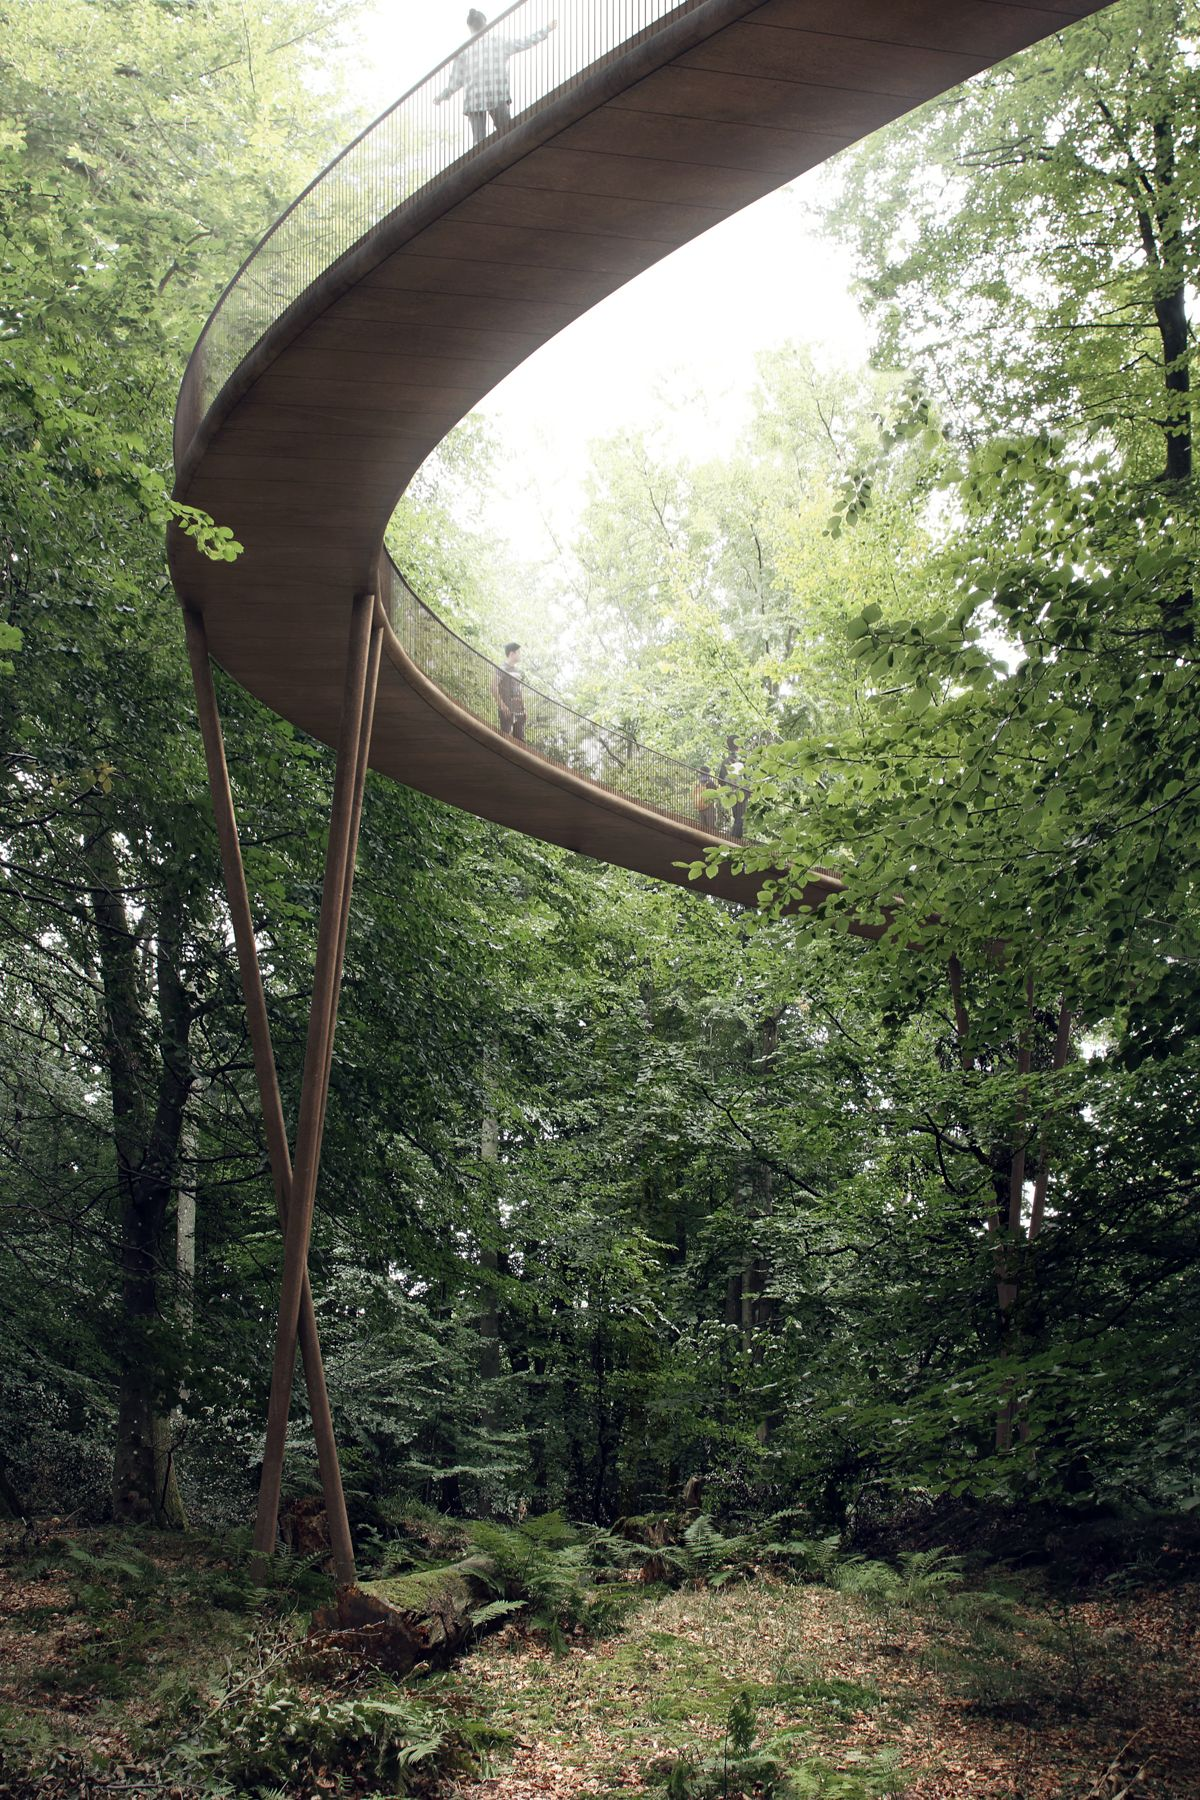 Architectural Accessibility in Nature with Denmark's Camp